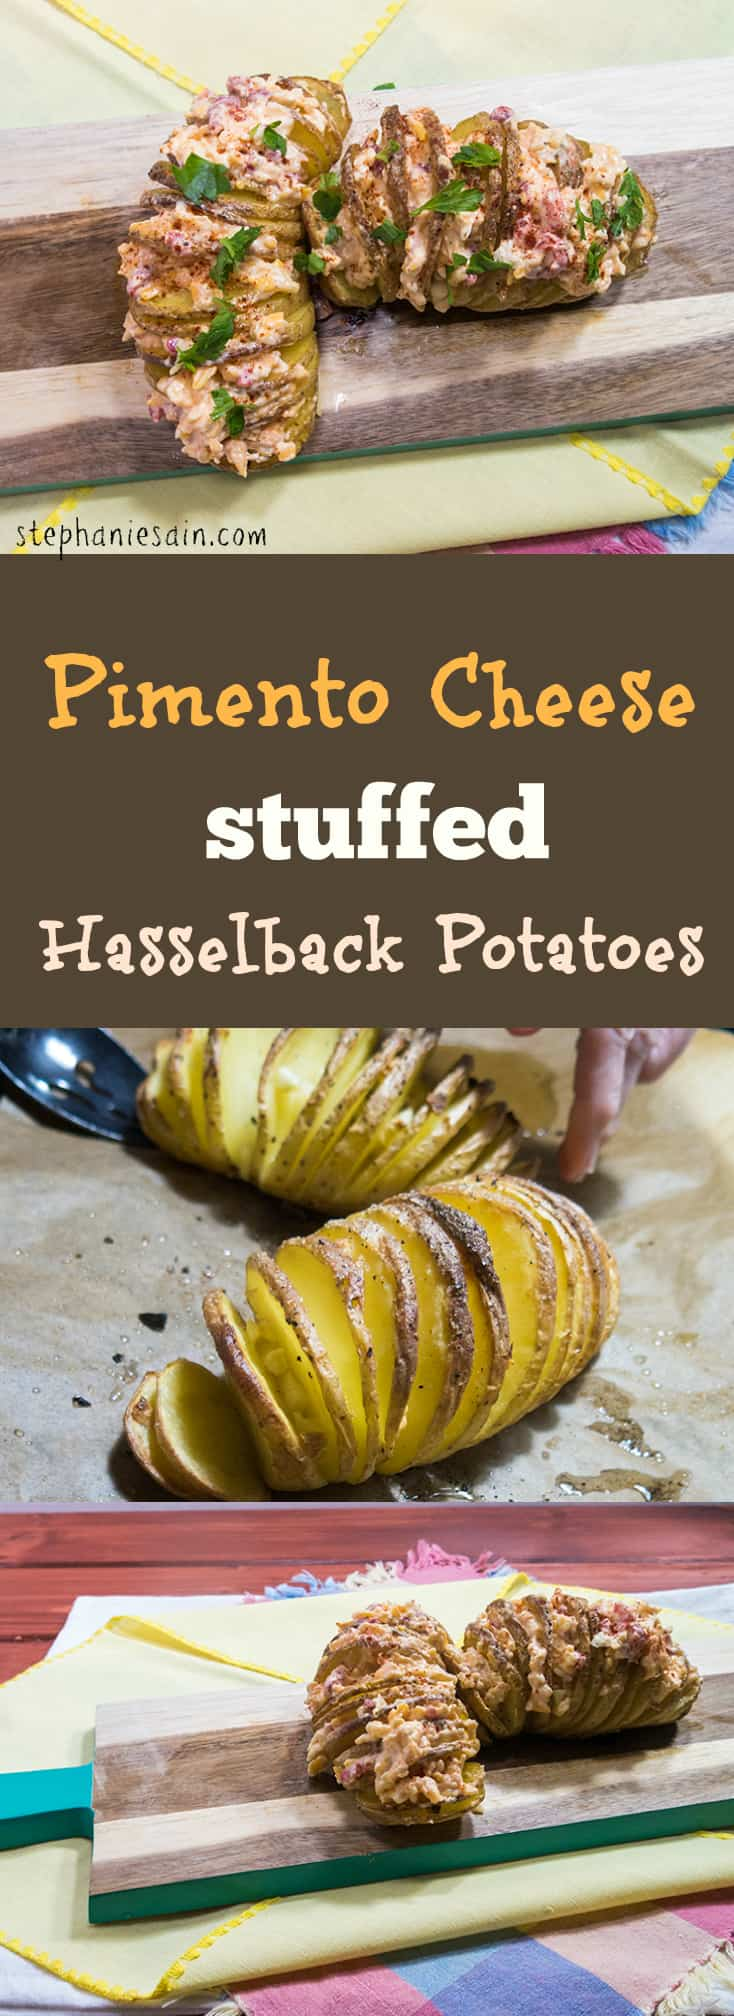 Pimento Cheese Stuffed Hasselback Potatoes are a tasty side dish or also great served as an appetizer. Vegetarian and Gluten Free.